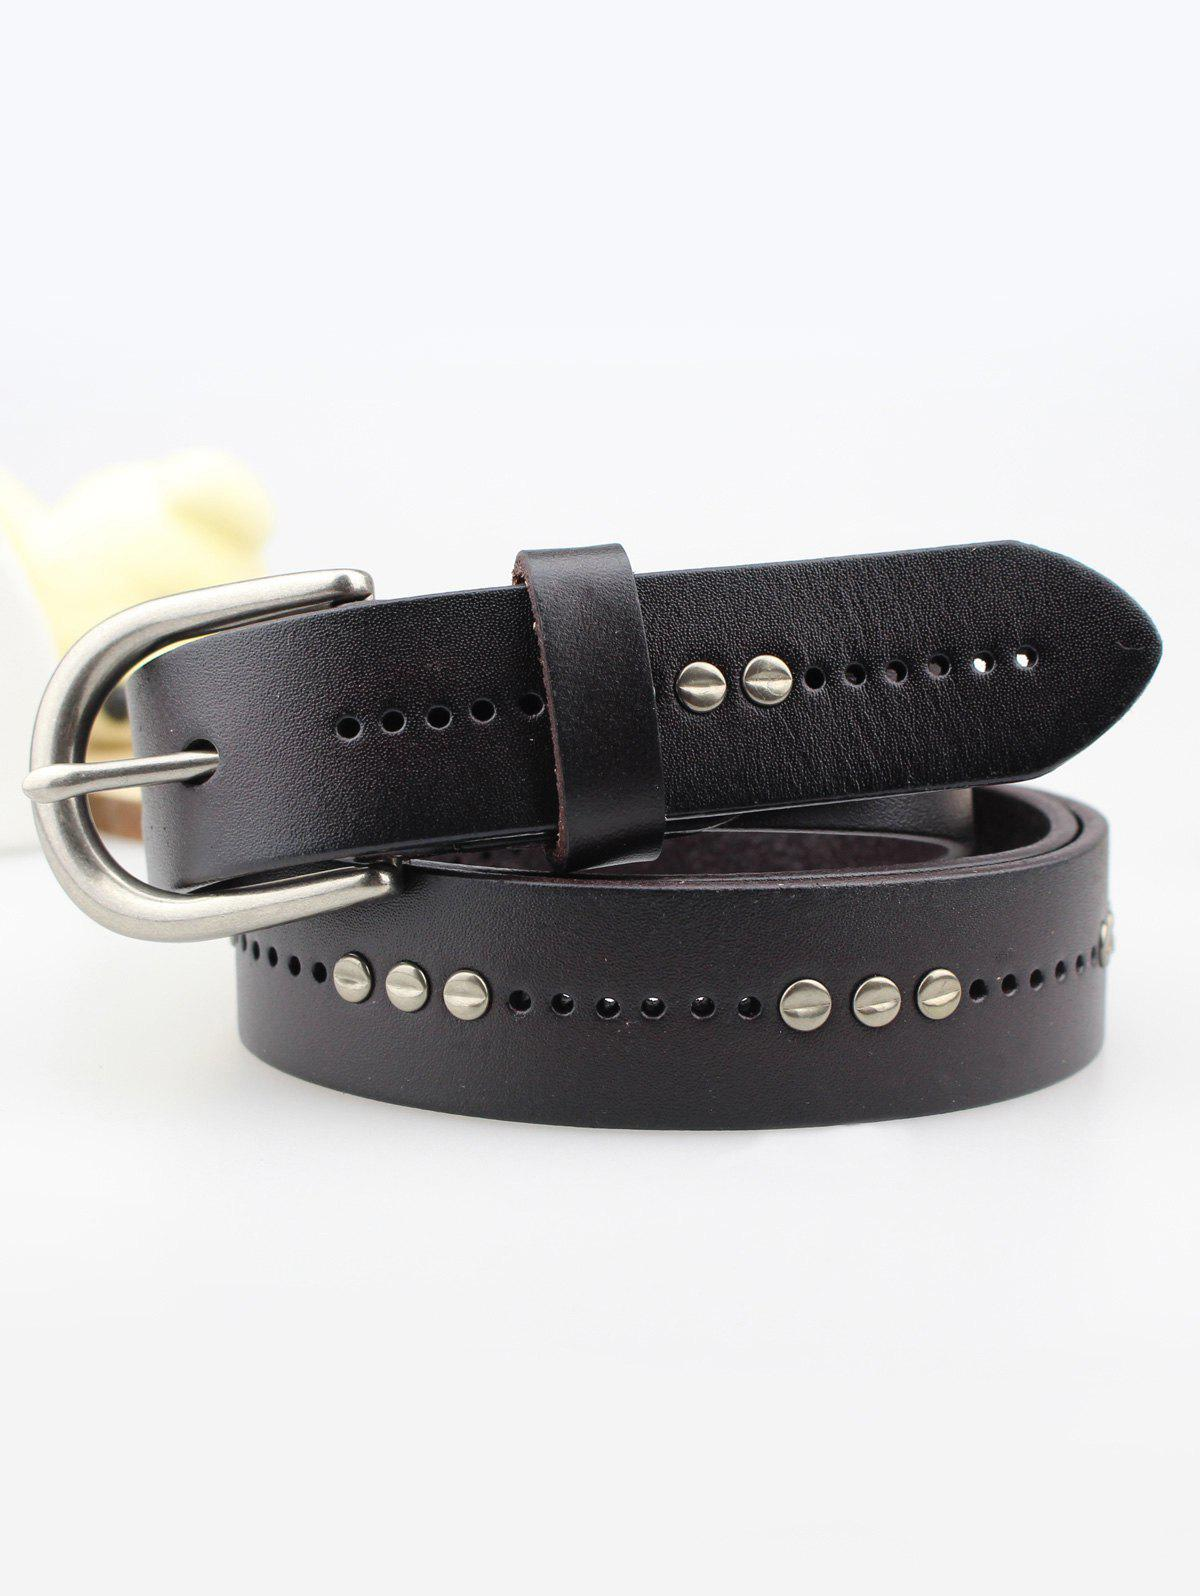 Rivet Insertion ardillon Ceinture en cuir - Tan